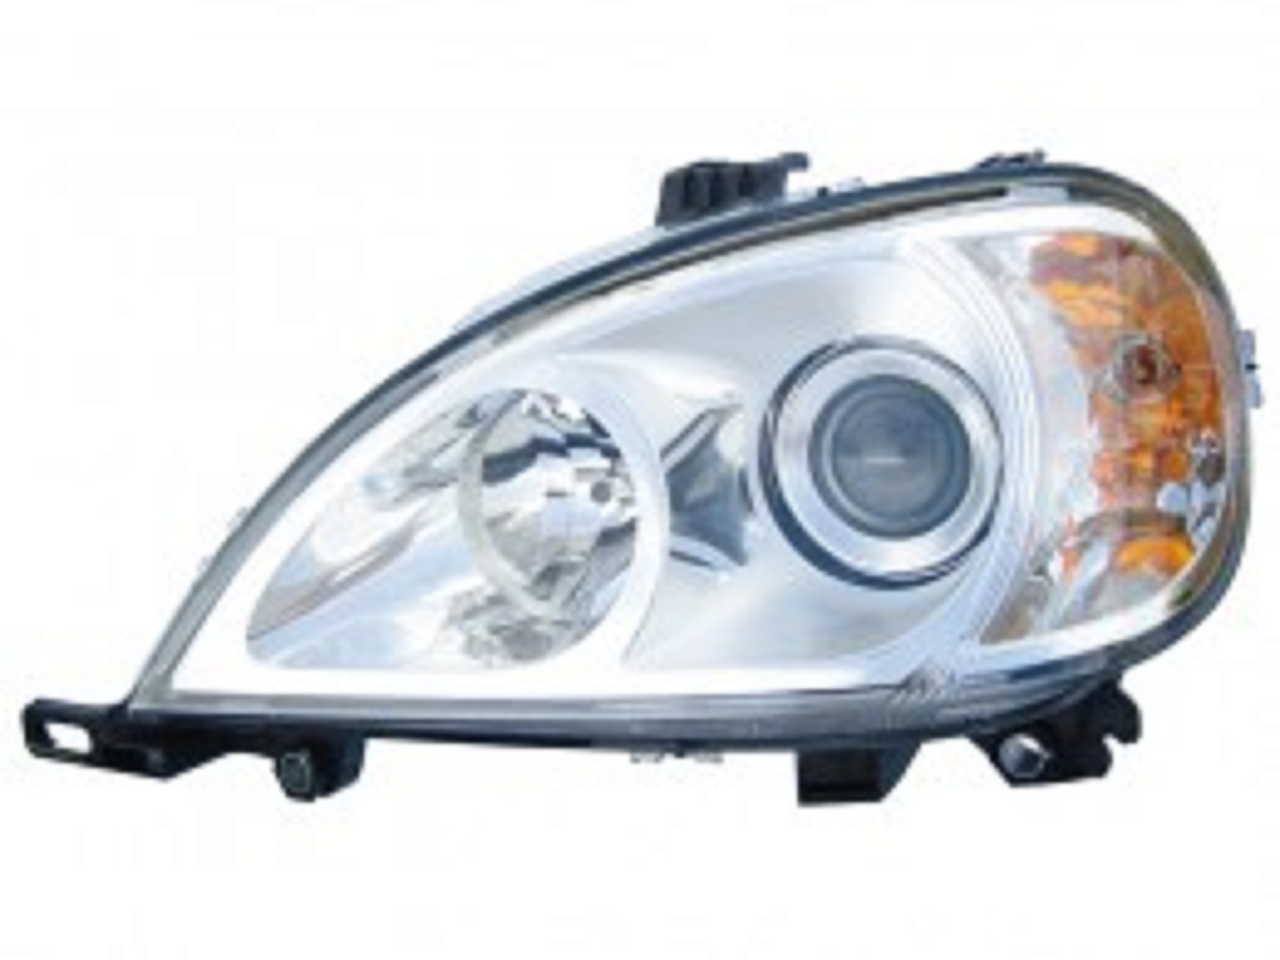 Mercedes Benz ML320 ML350 ML500 2002 2003 2004 2005 left driver headlight